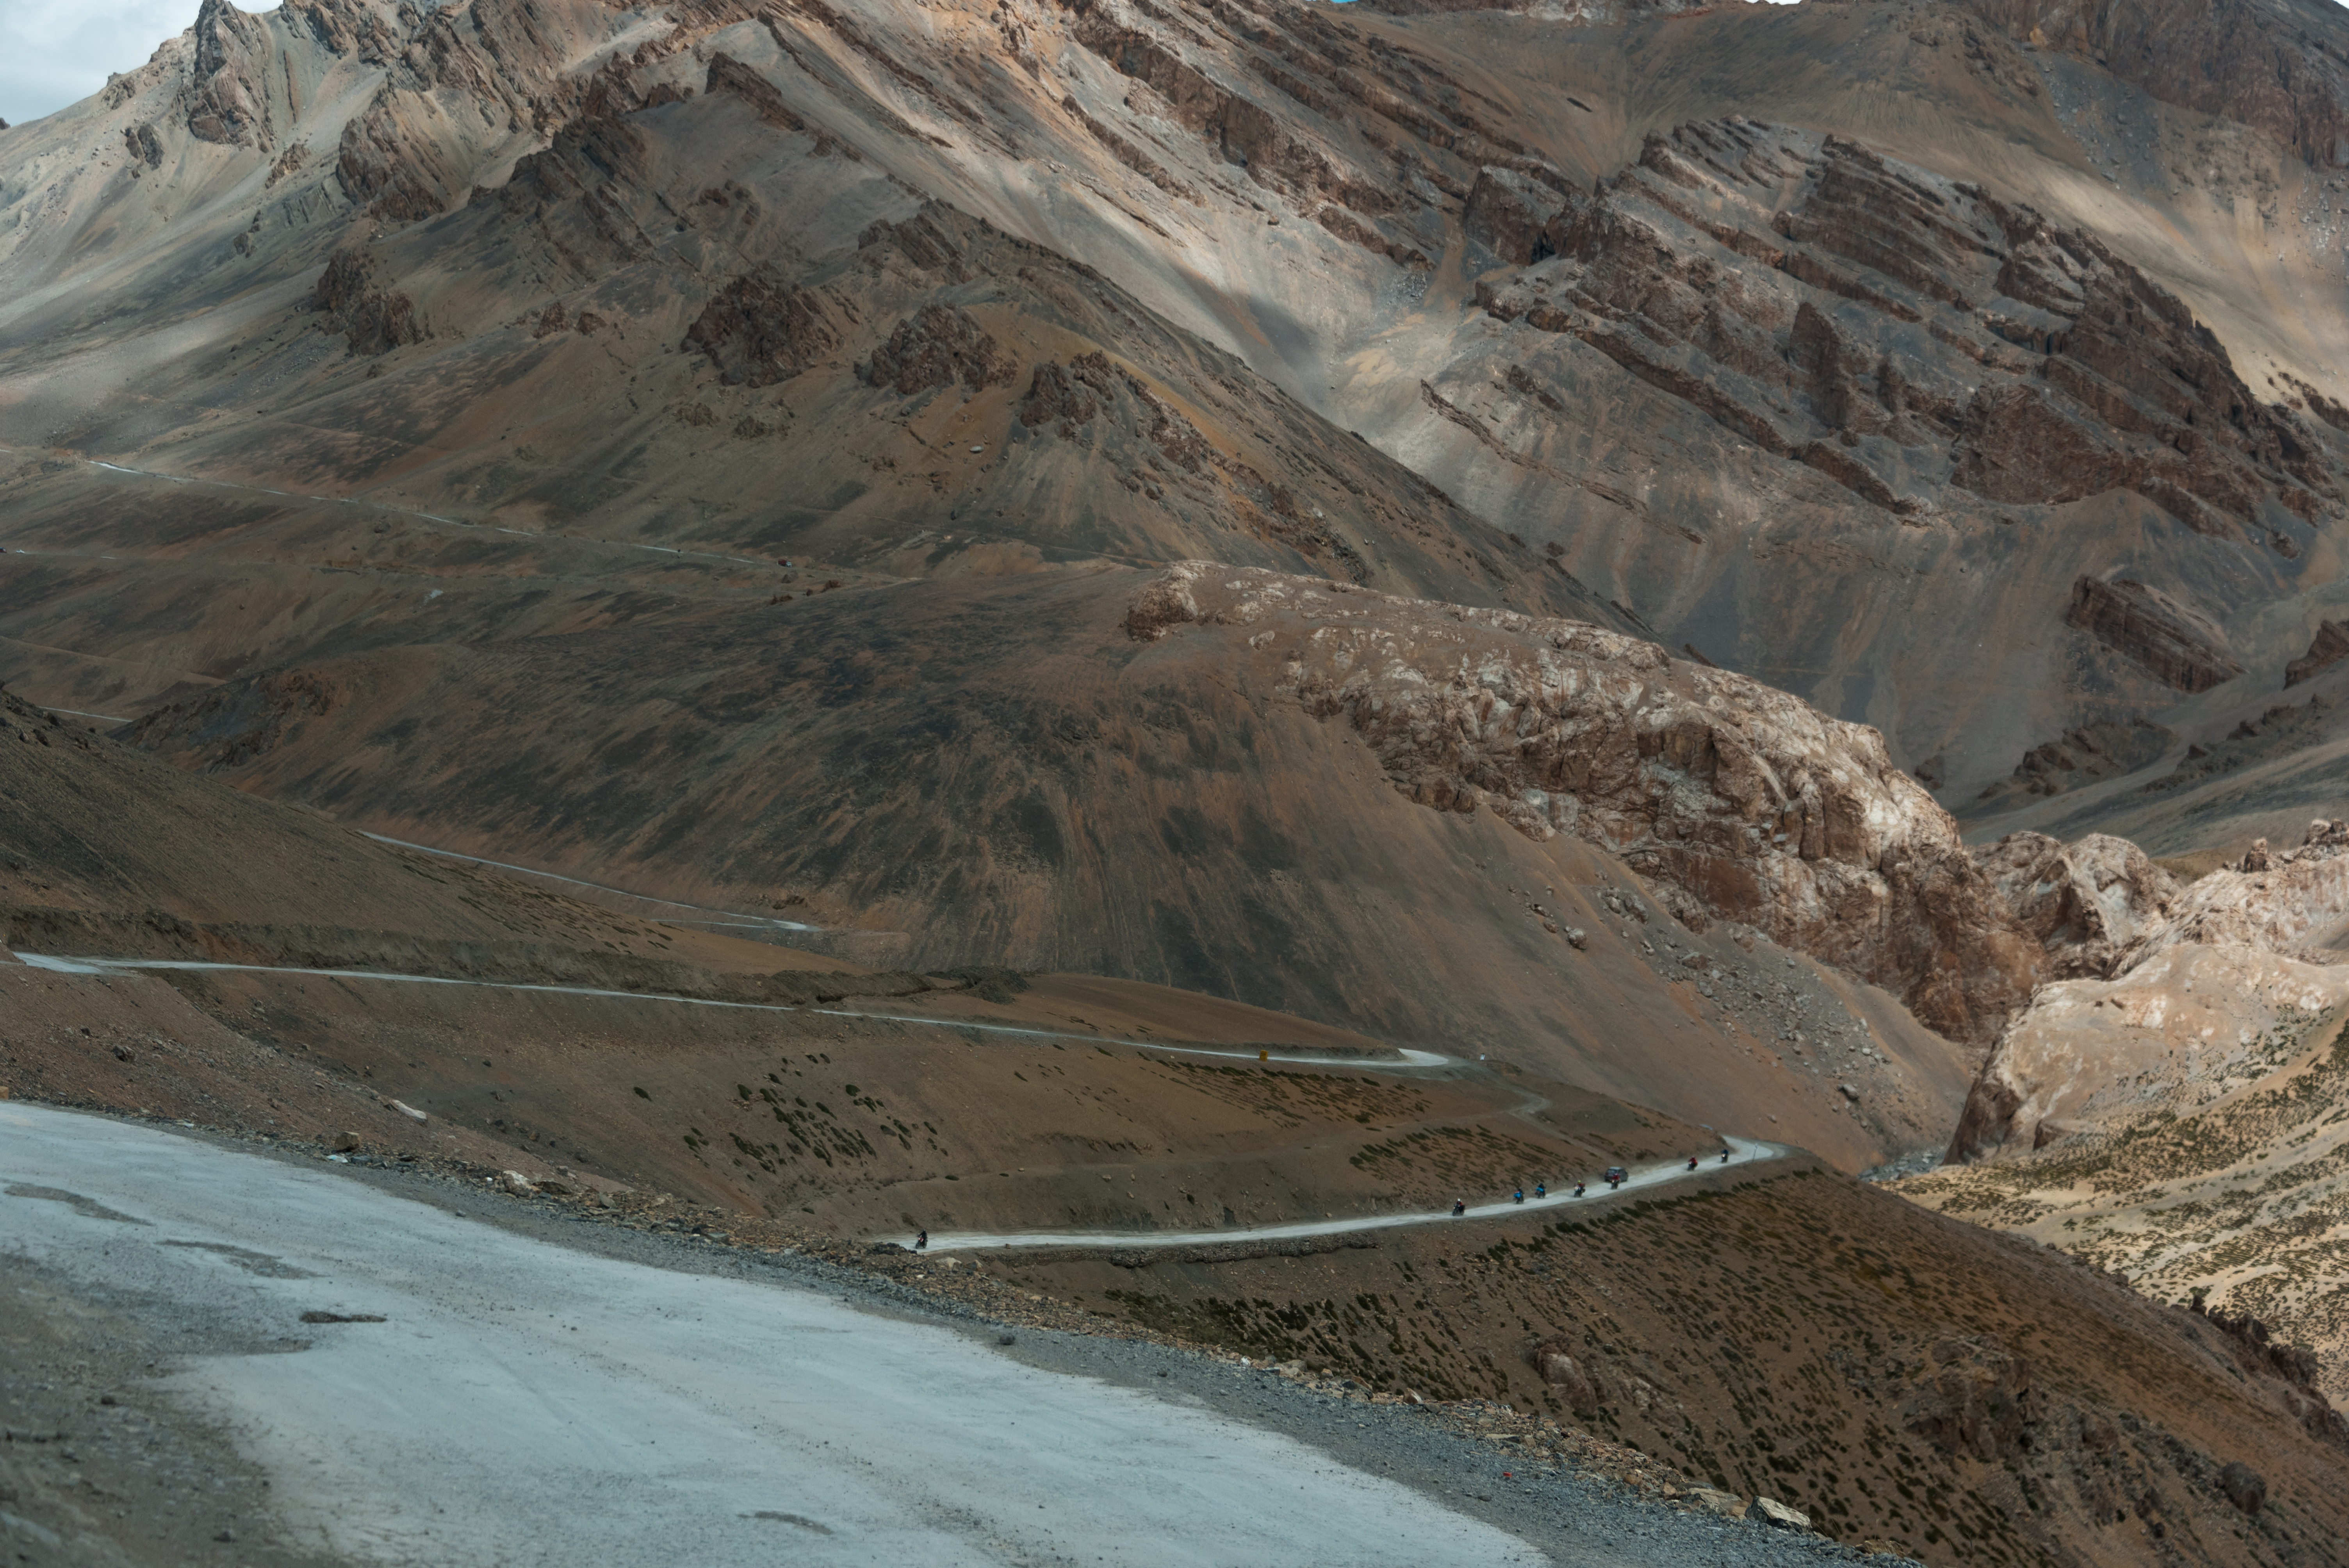 Hilly Roads Of The Ladakh Region